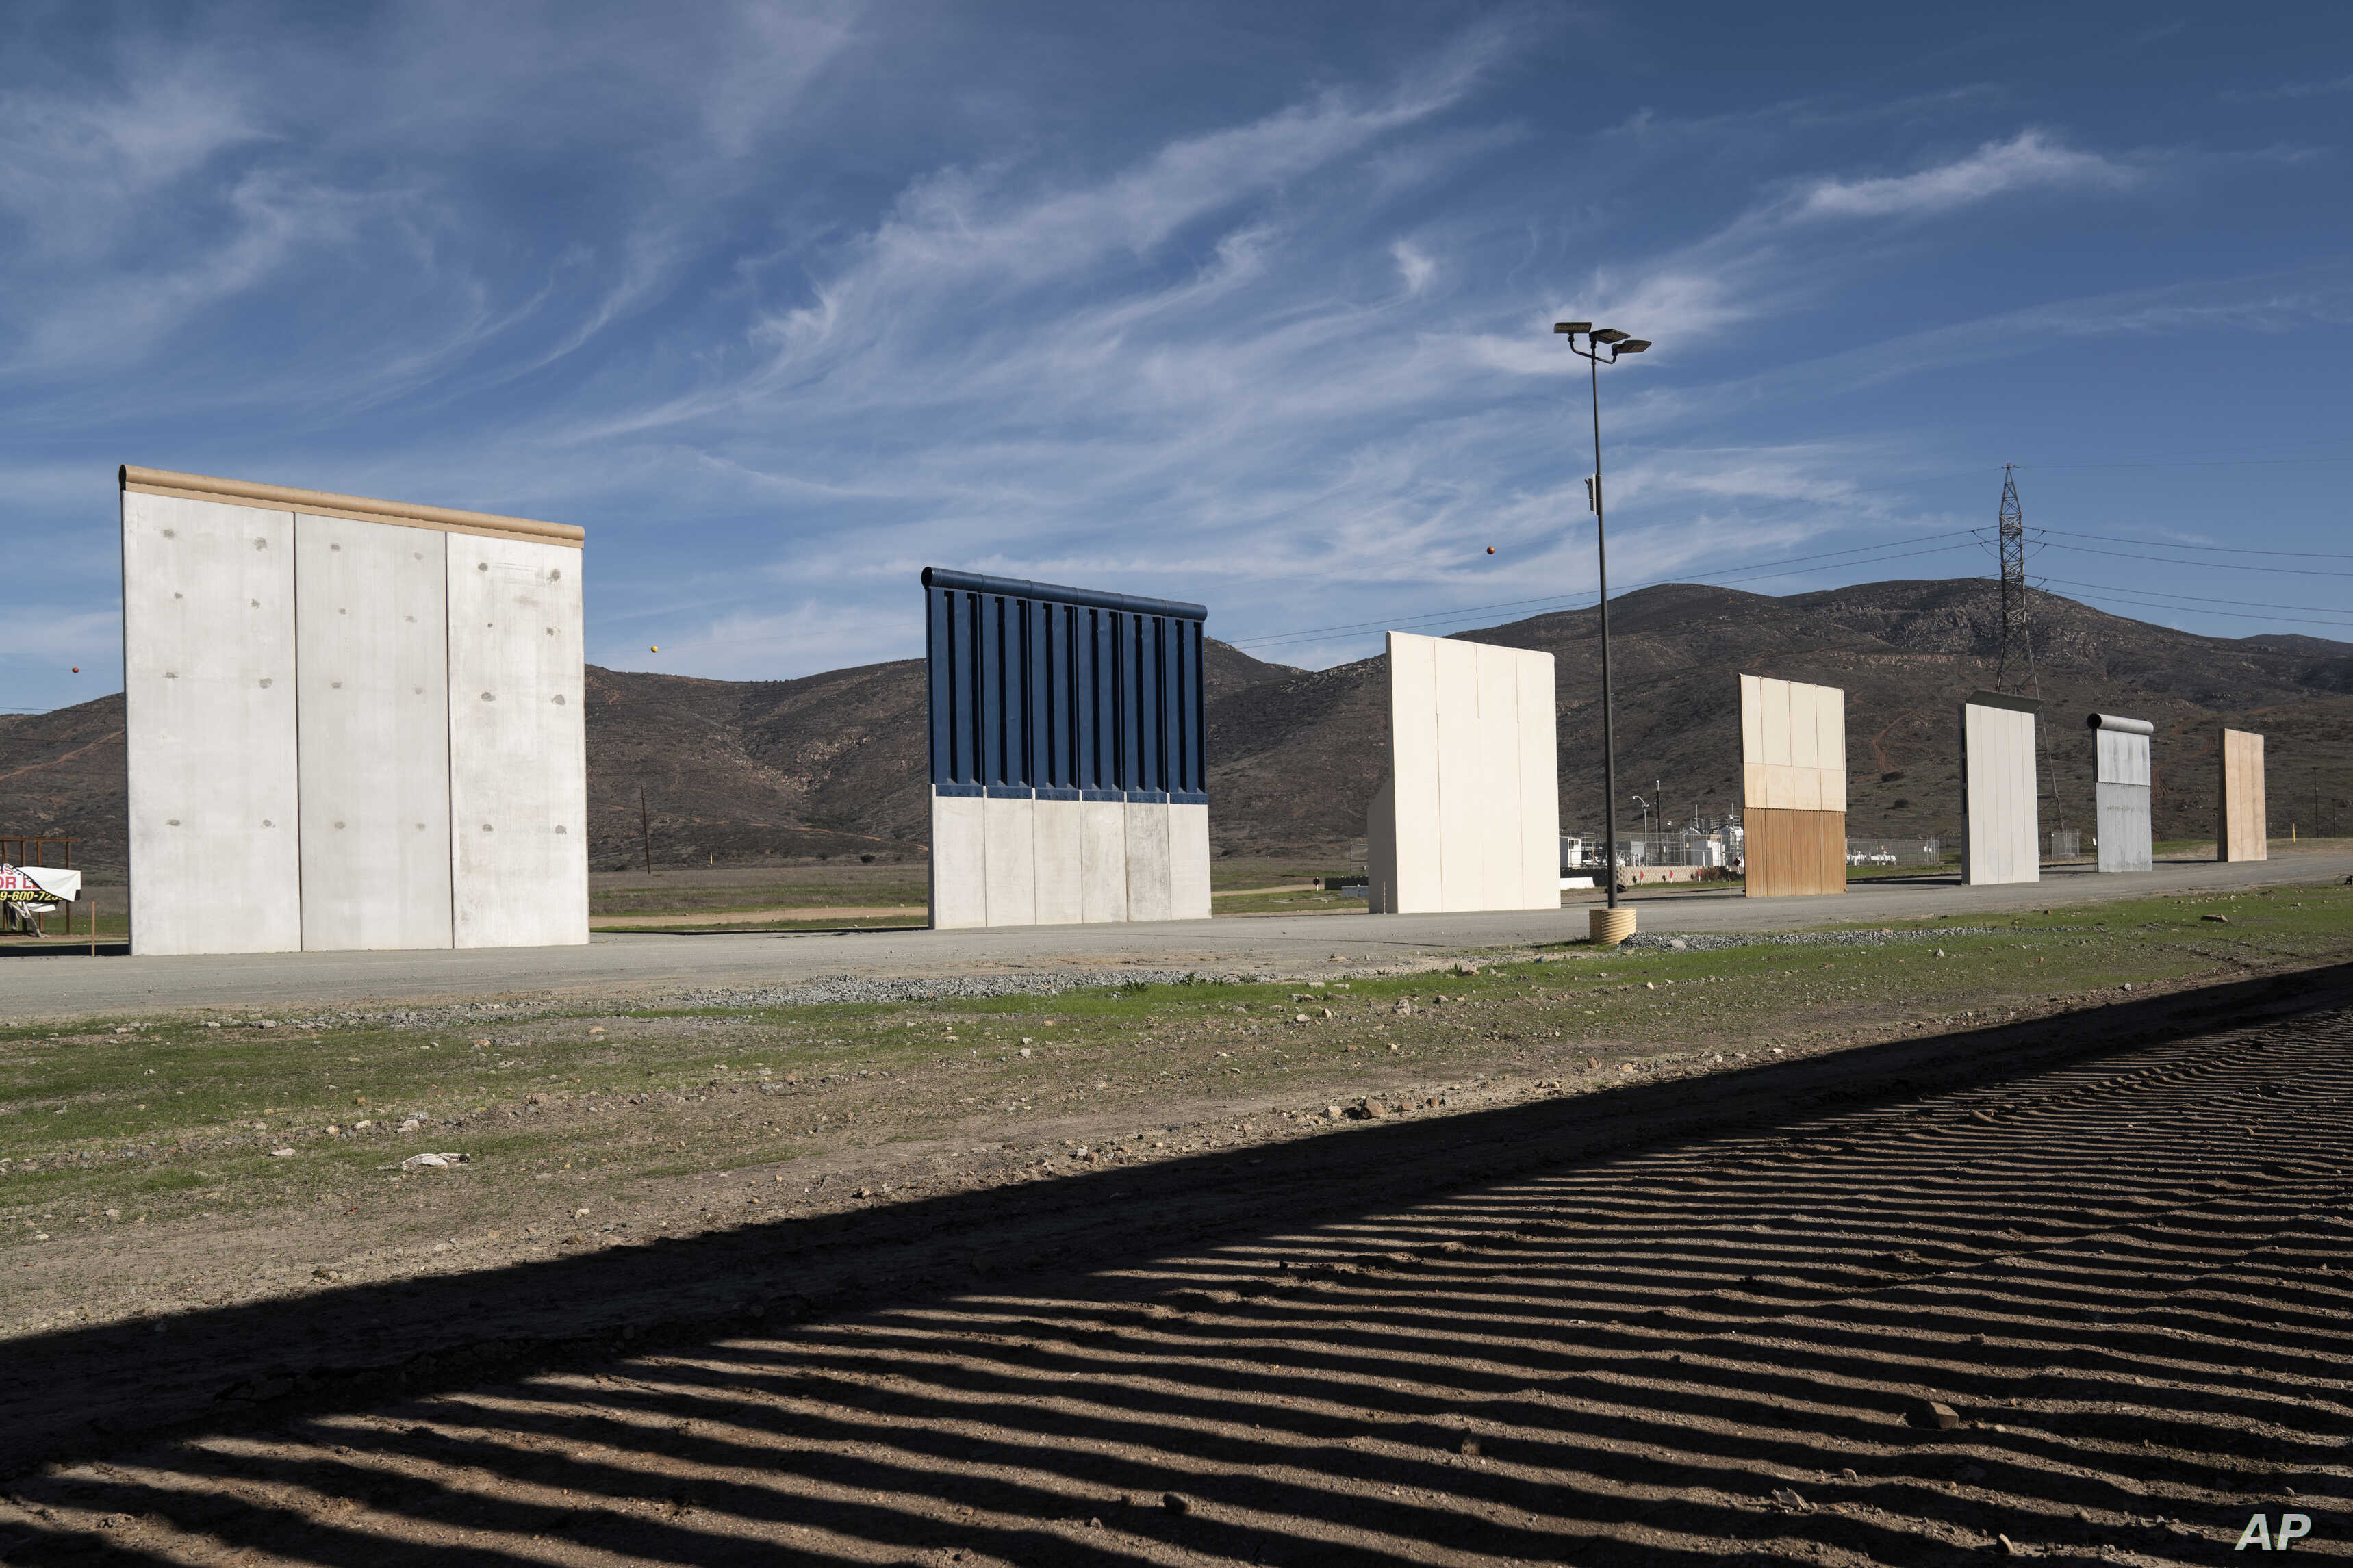 Border wall prototypes stand in San Diego near the Mexico U.S. border, seen from Tijuana, Dec. 22, 2018. The U.S. federal government remains partially closed in a protracted standoff over President Donald Trump's demand for money to build a border wa...